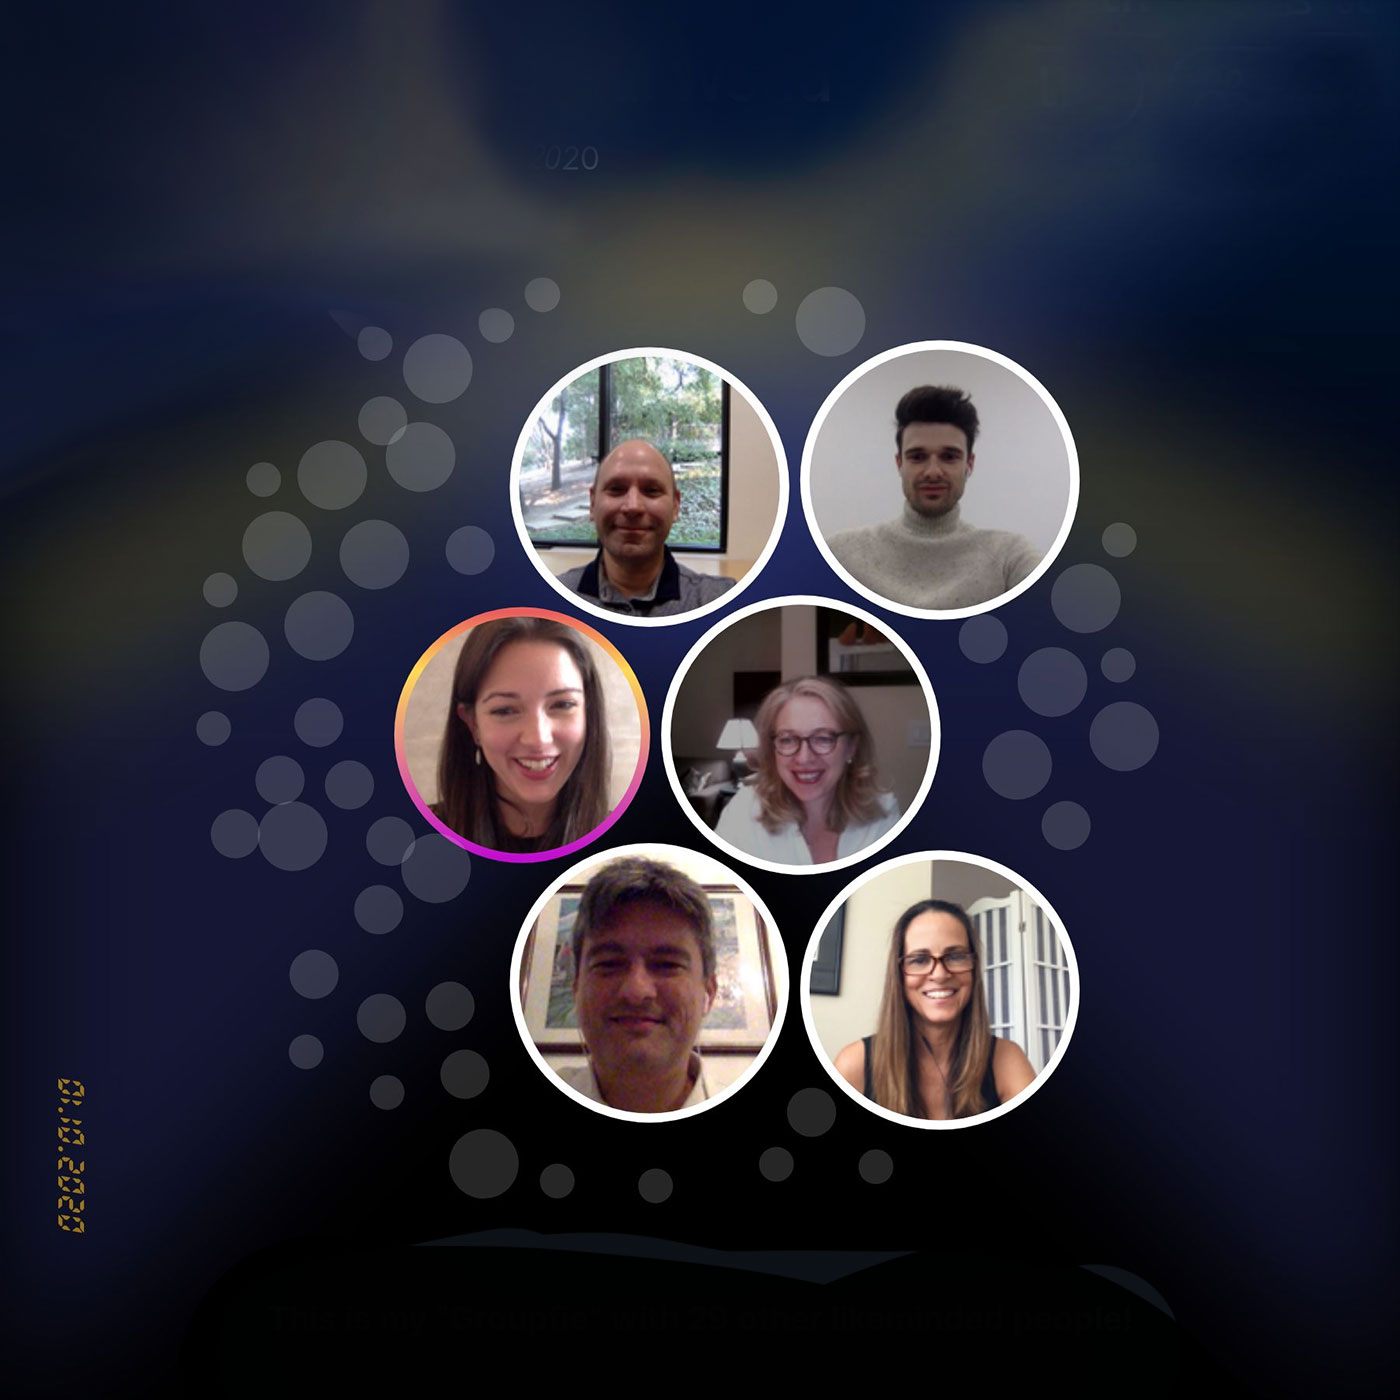 Image with photos of participants in the online panel discussion